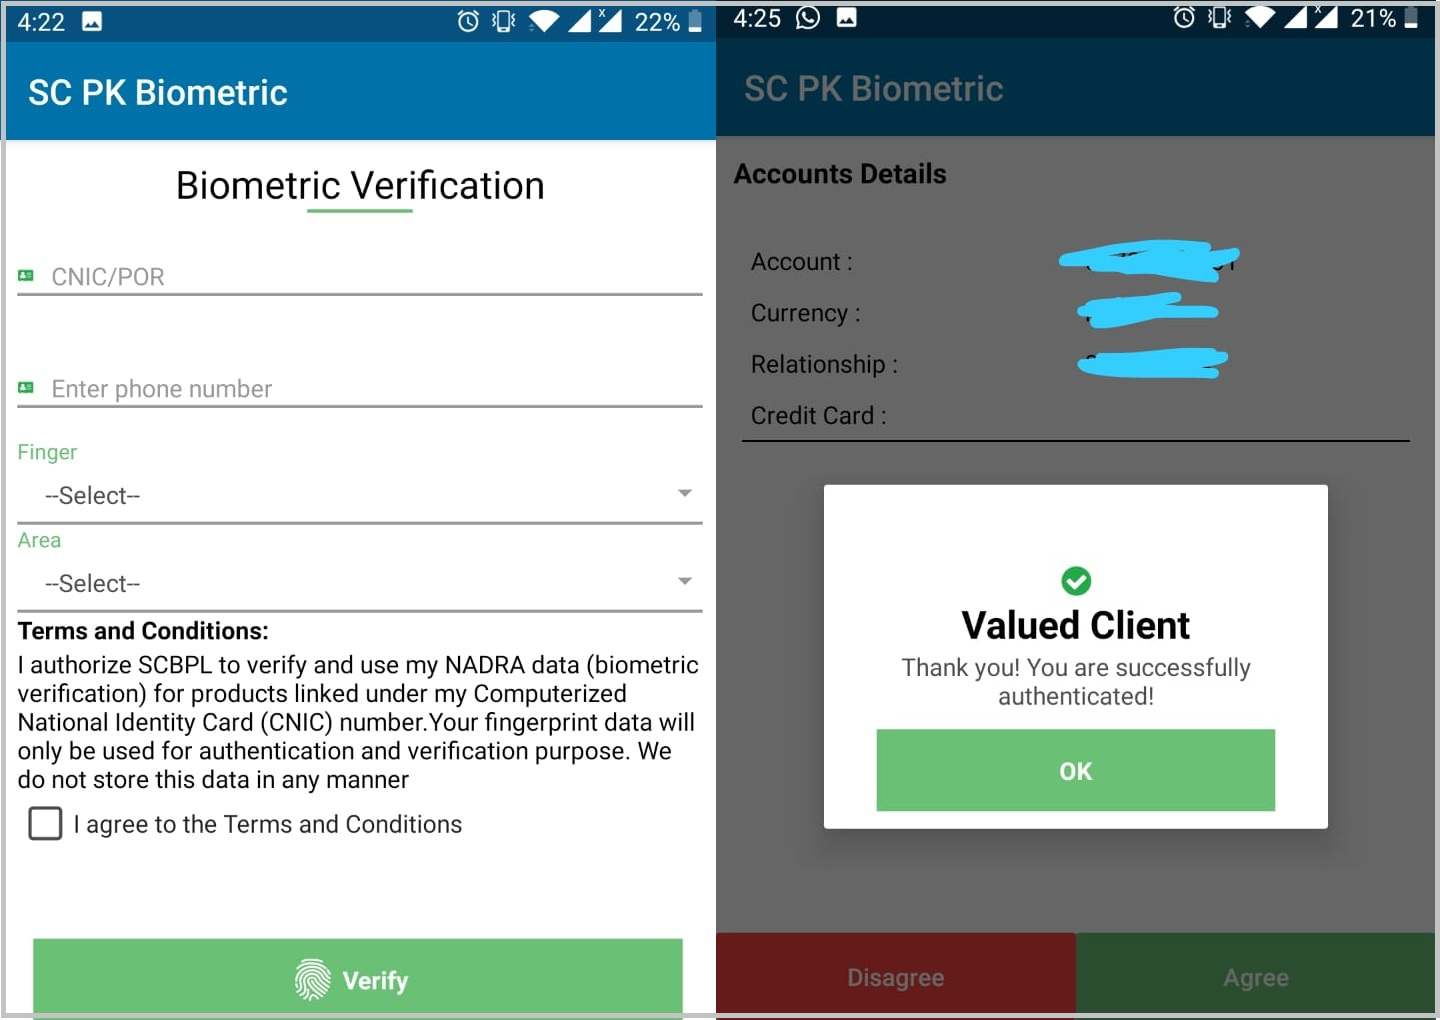 Standard Chartered bank account holders can now verify their